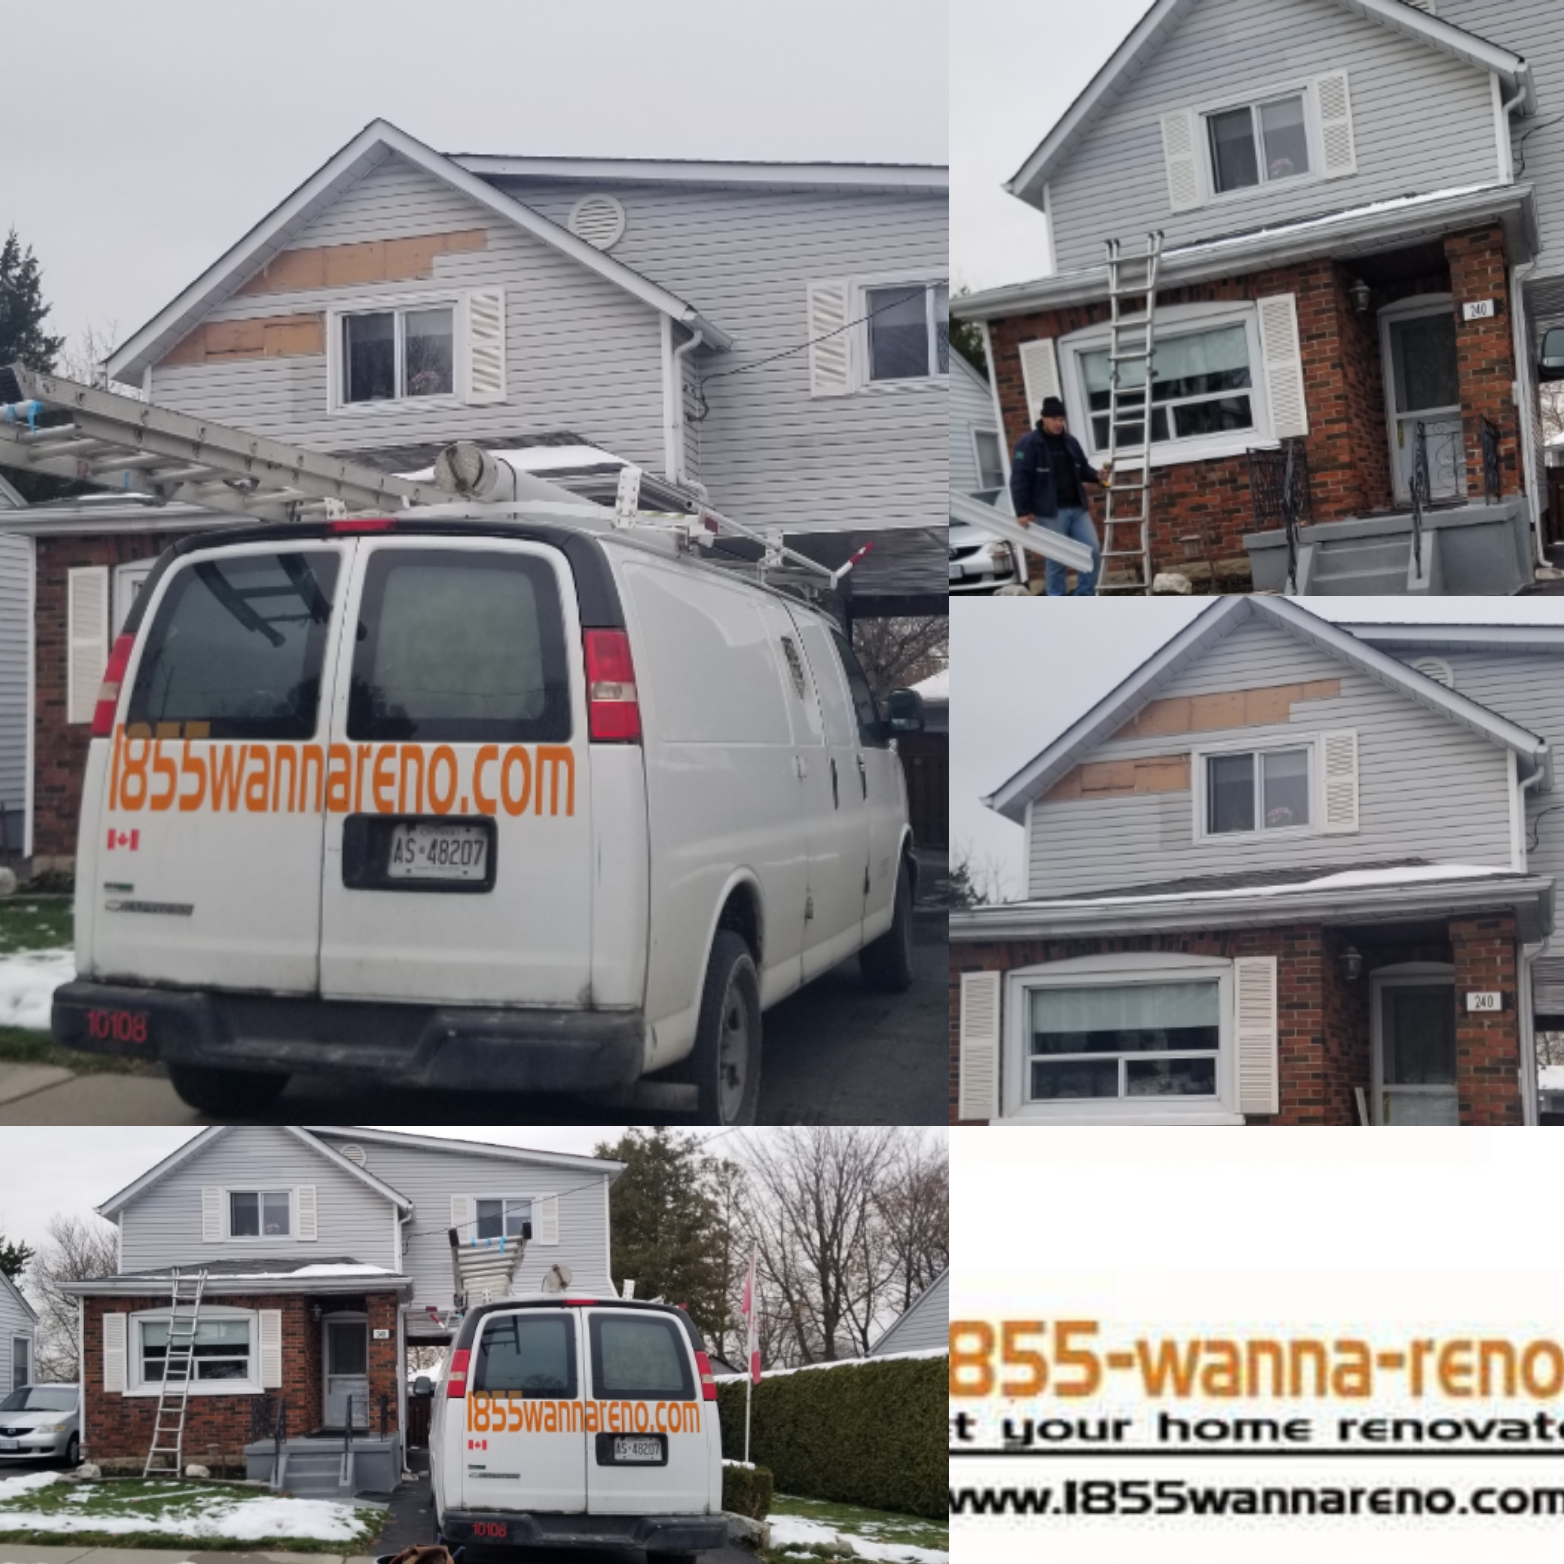 Siding repair in Oshawa